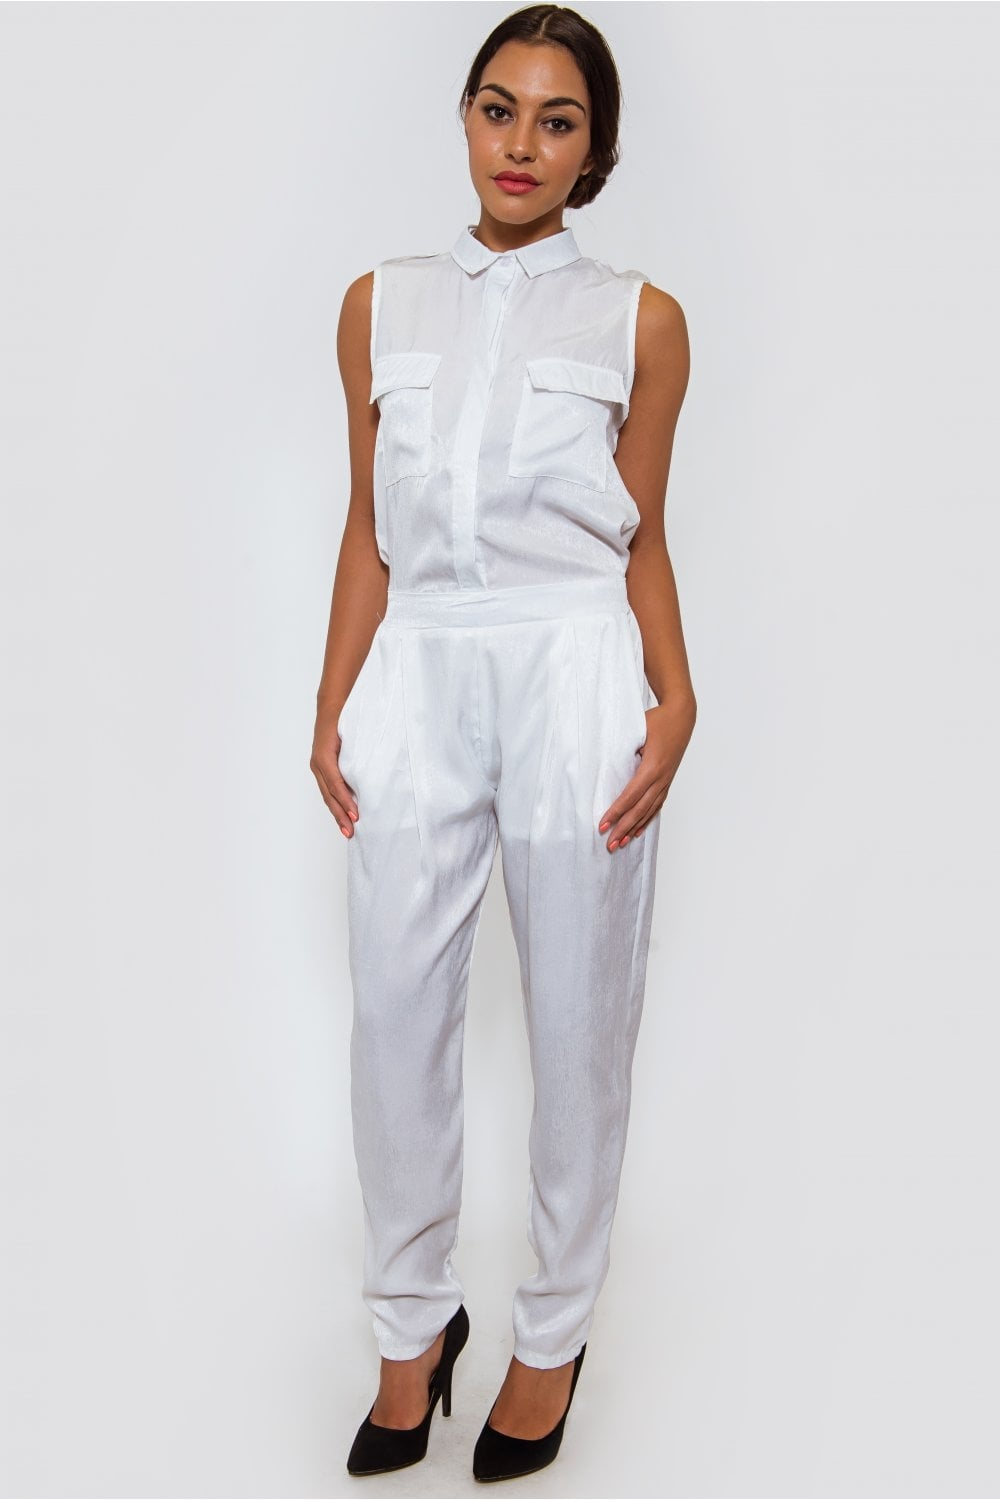 dbb841d3c9c White Satin Utility Jumpsuit - from The Fashion Bible UK